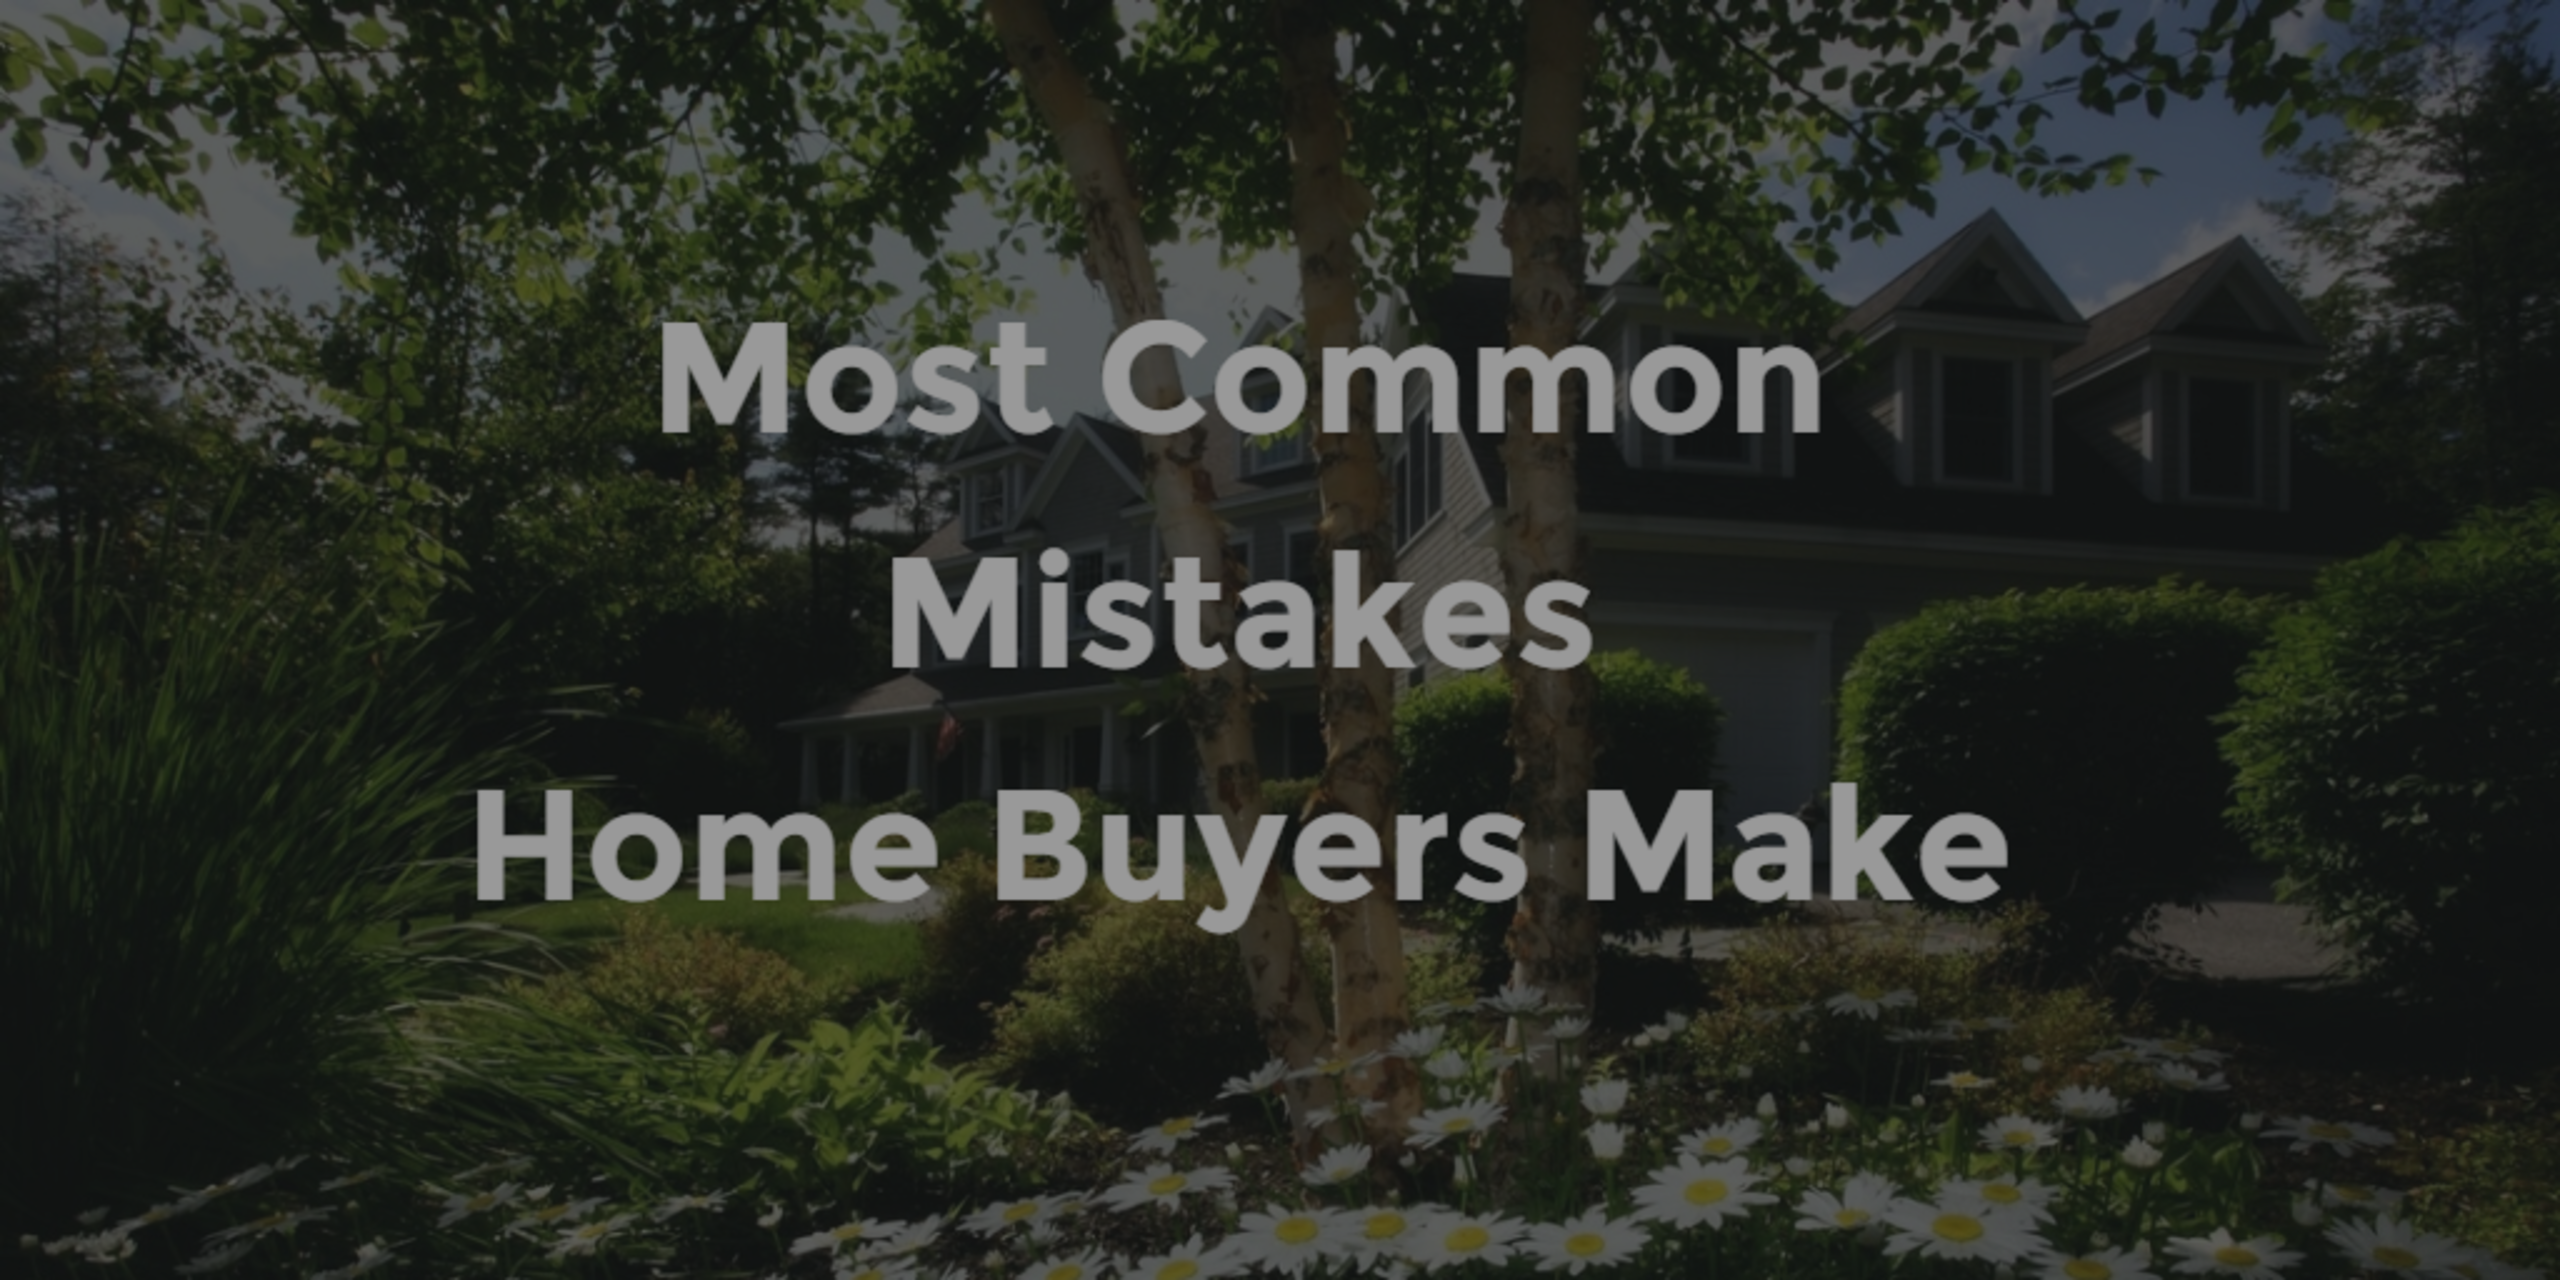 Most Common Mistakes Home Buyers Make